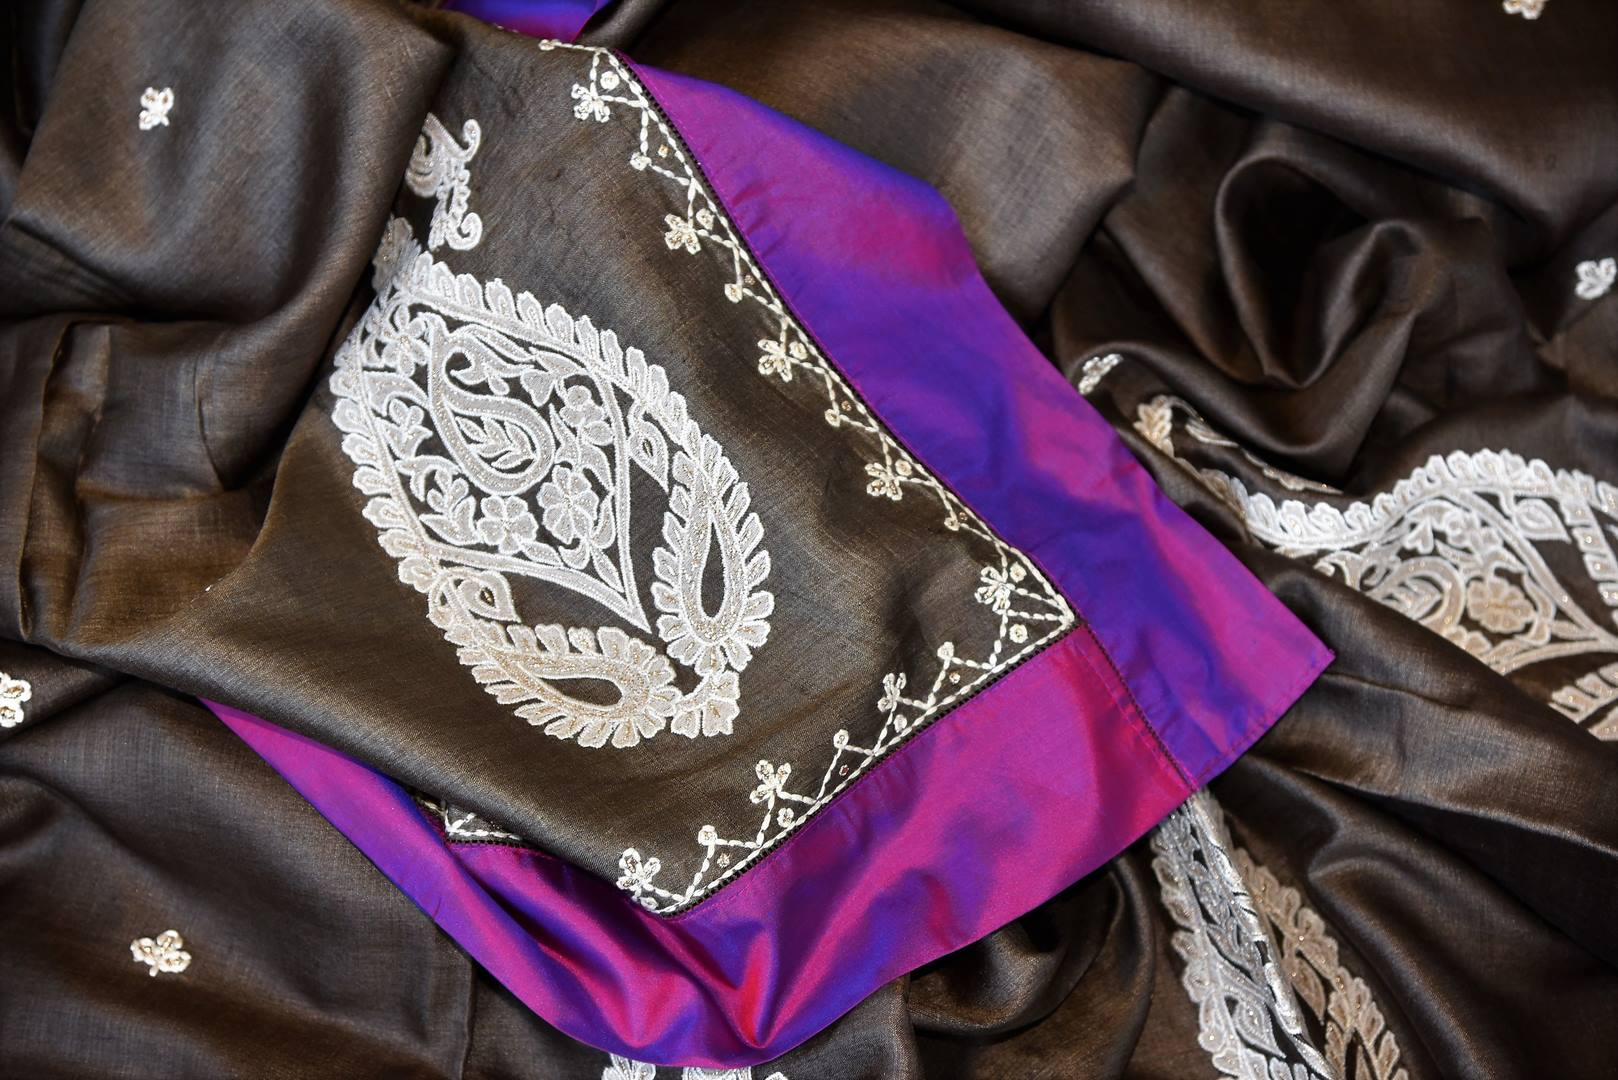 Buy dark grey applique work tussar saree online in USA with purple border. Be the talk of every occasions with your elegant saree look in designer sarees, embroidered sarees, handwoven silk sarees from Pure Elegance Indian fashion store in USA.-details